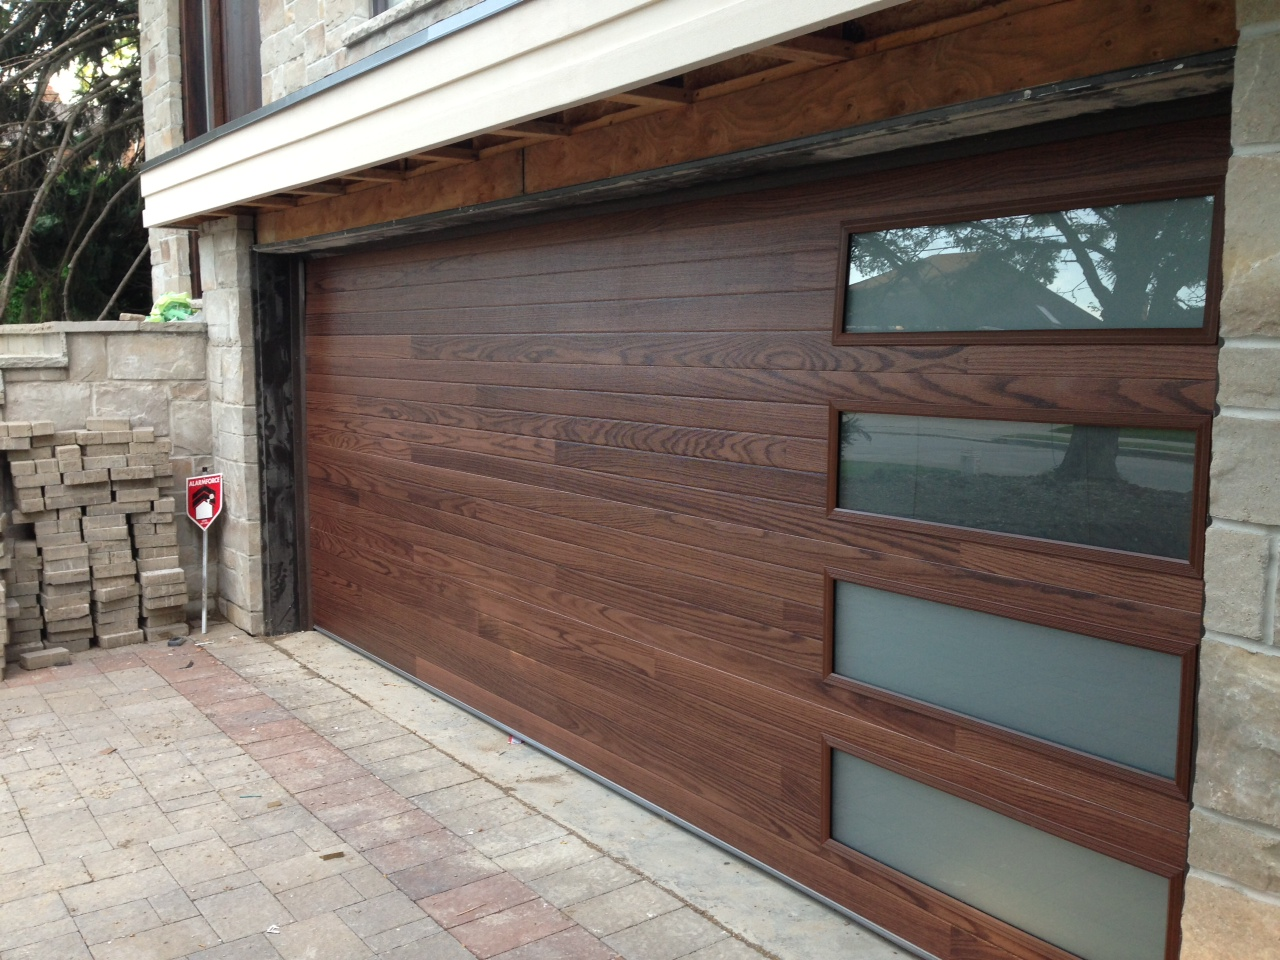 960 #66483E Garage Doors And Gates Contemporary Modern Wood Garage Door With  wallpaper Doors And Garage Doors 37151280